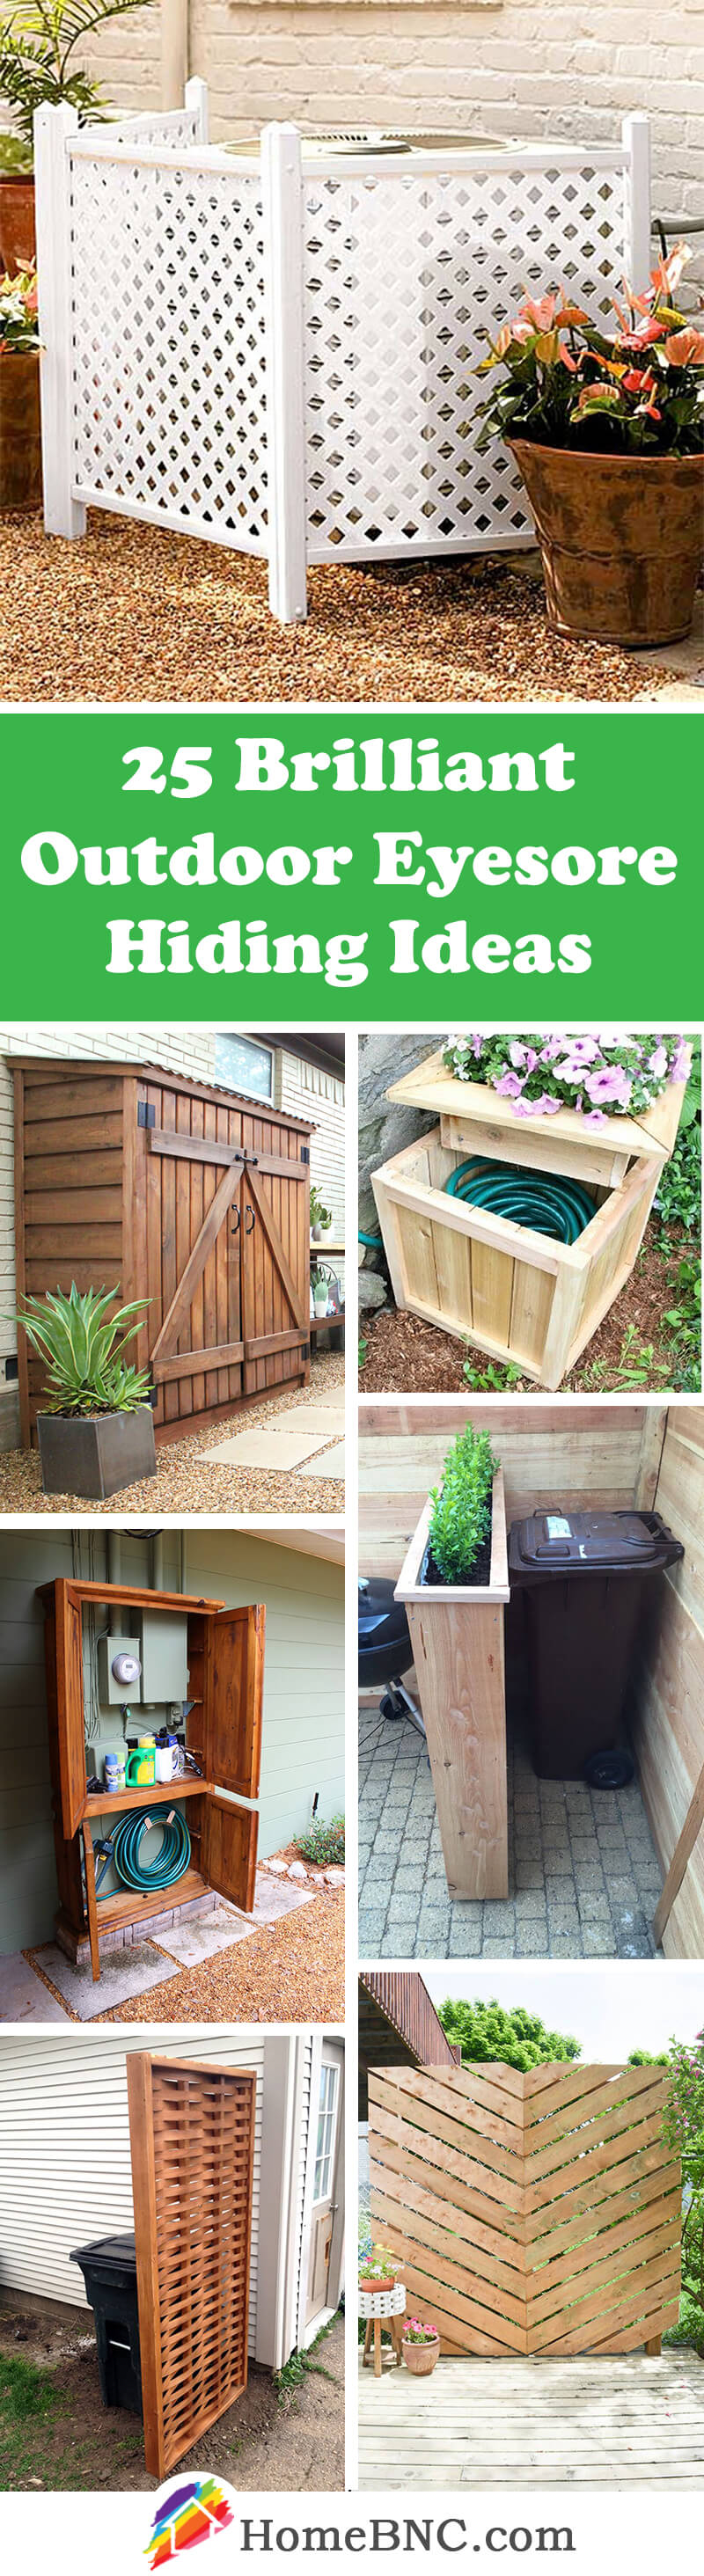 Outdoor Eyesore Hiding Design Ideas